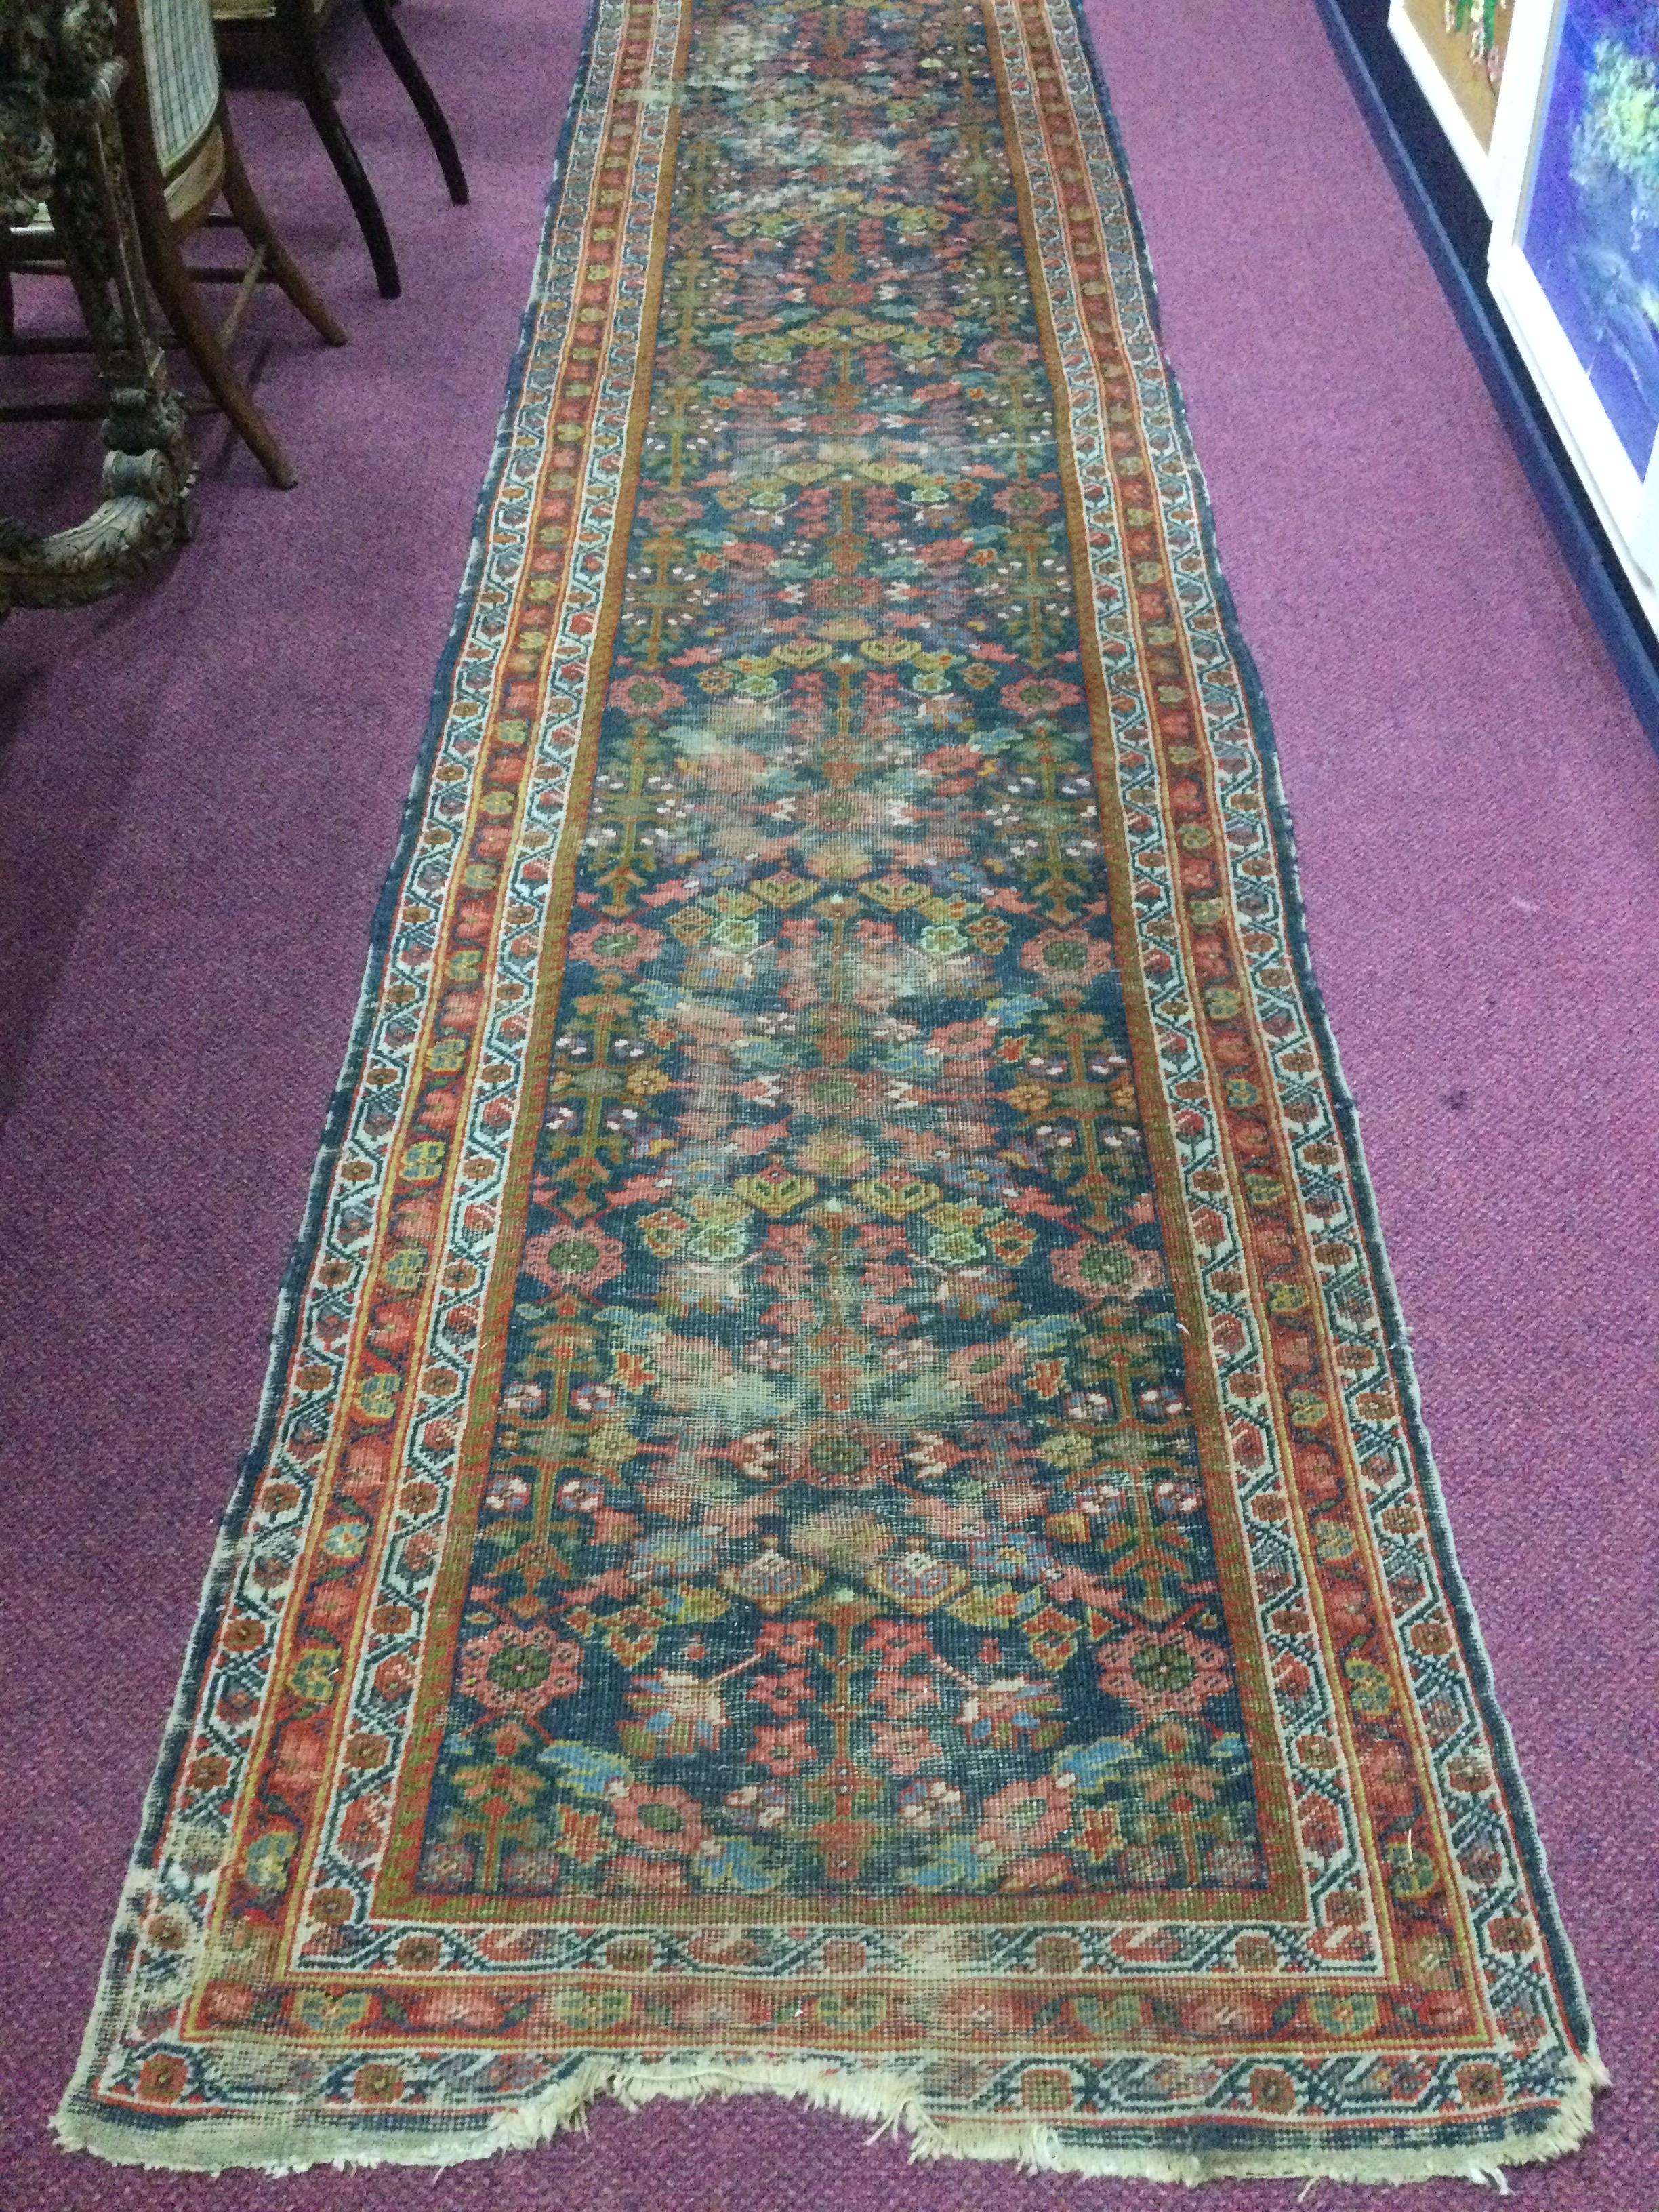 A MIDDLE EASTERN RUG - Image 2 of 2